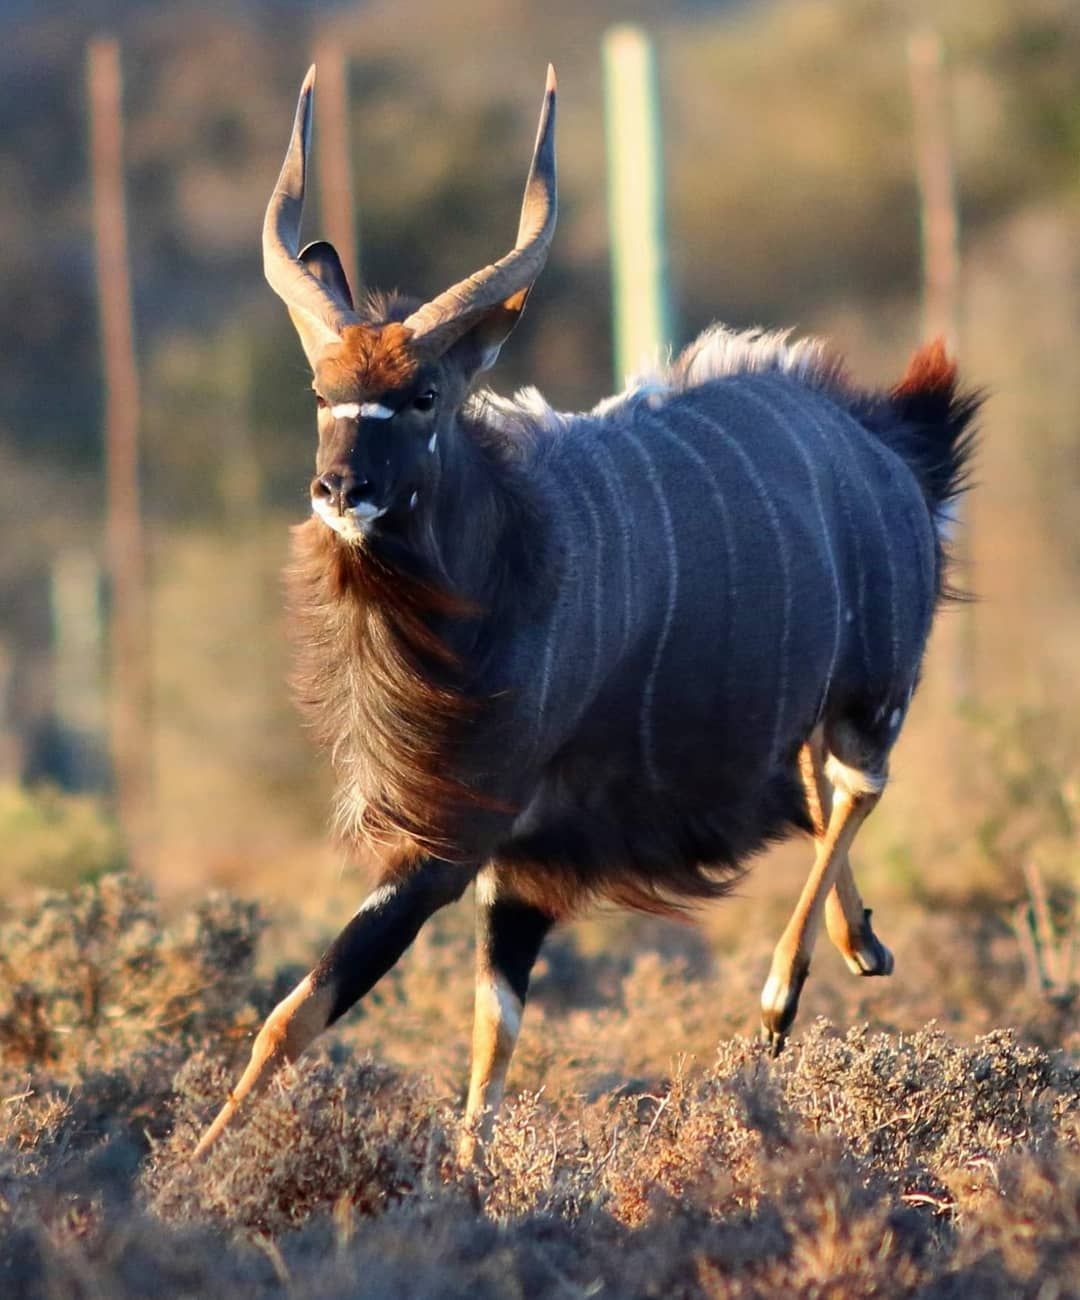 Nyala Running On Instagram South Africa Wildlife African Wildlife Nature Animals